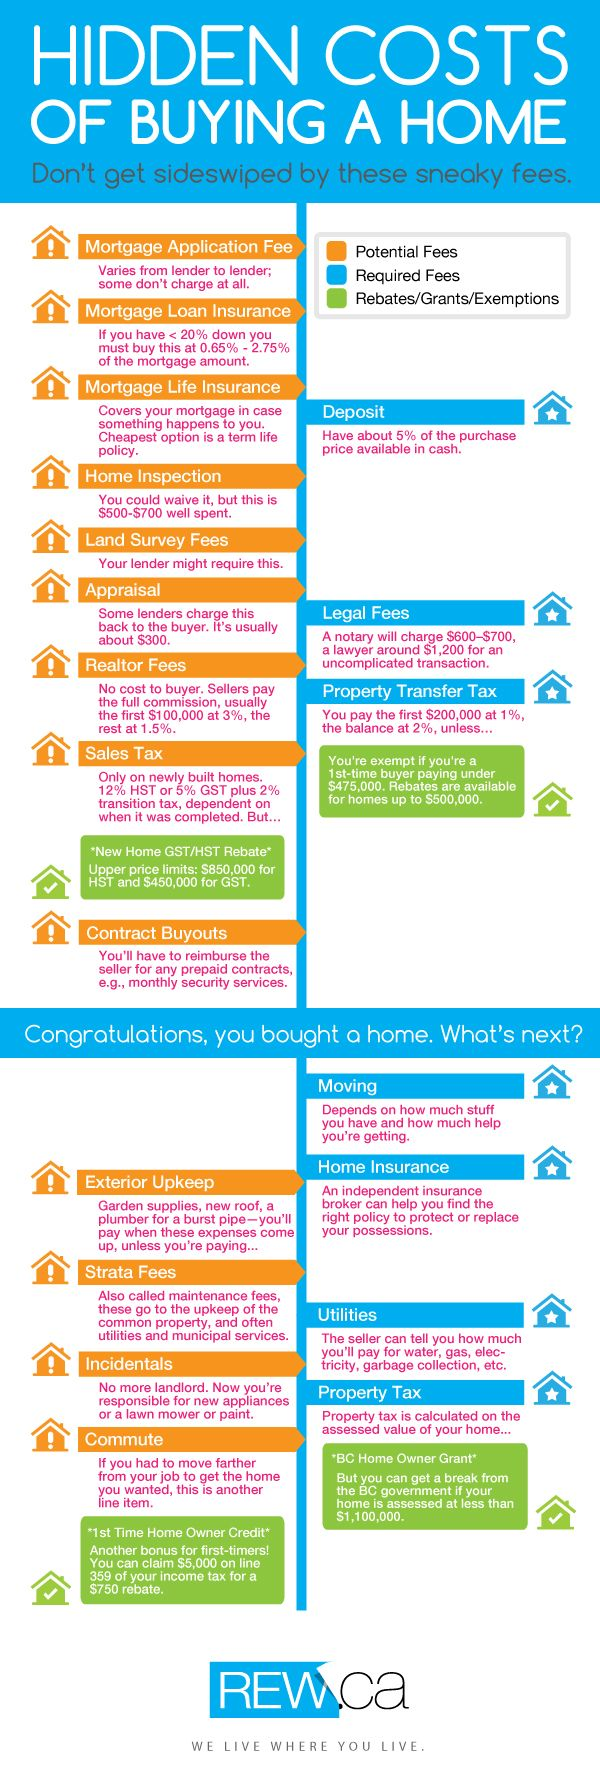 You've Saved Up A Down Payment, You're Pre-Approved For A Mortgage, You've Found A Place You Love. Now, HEADS UP! There'll Be All Sorts Of Extra Fees and Charges Coming At You. With This Handy Chart You'll Be Prepared For The Hidden Costs That Come With B  www.Homematchnw.us